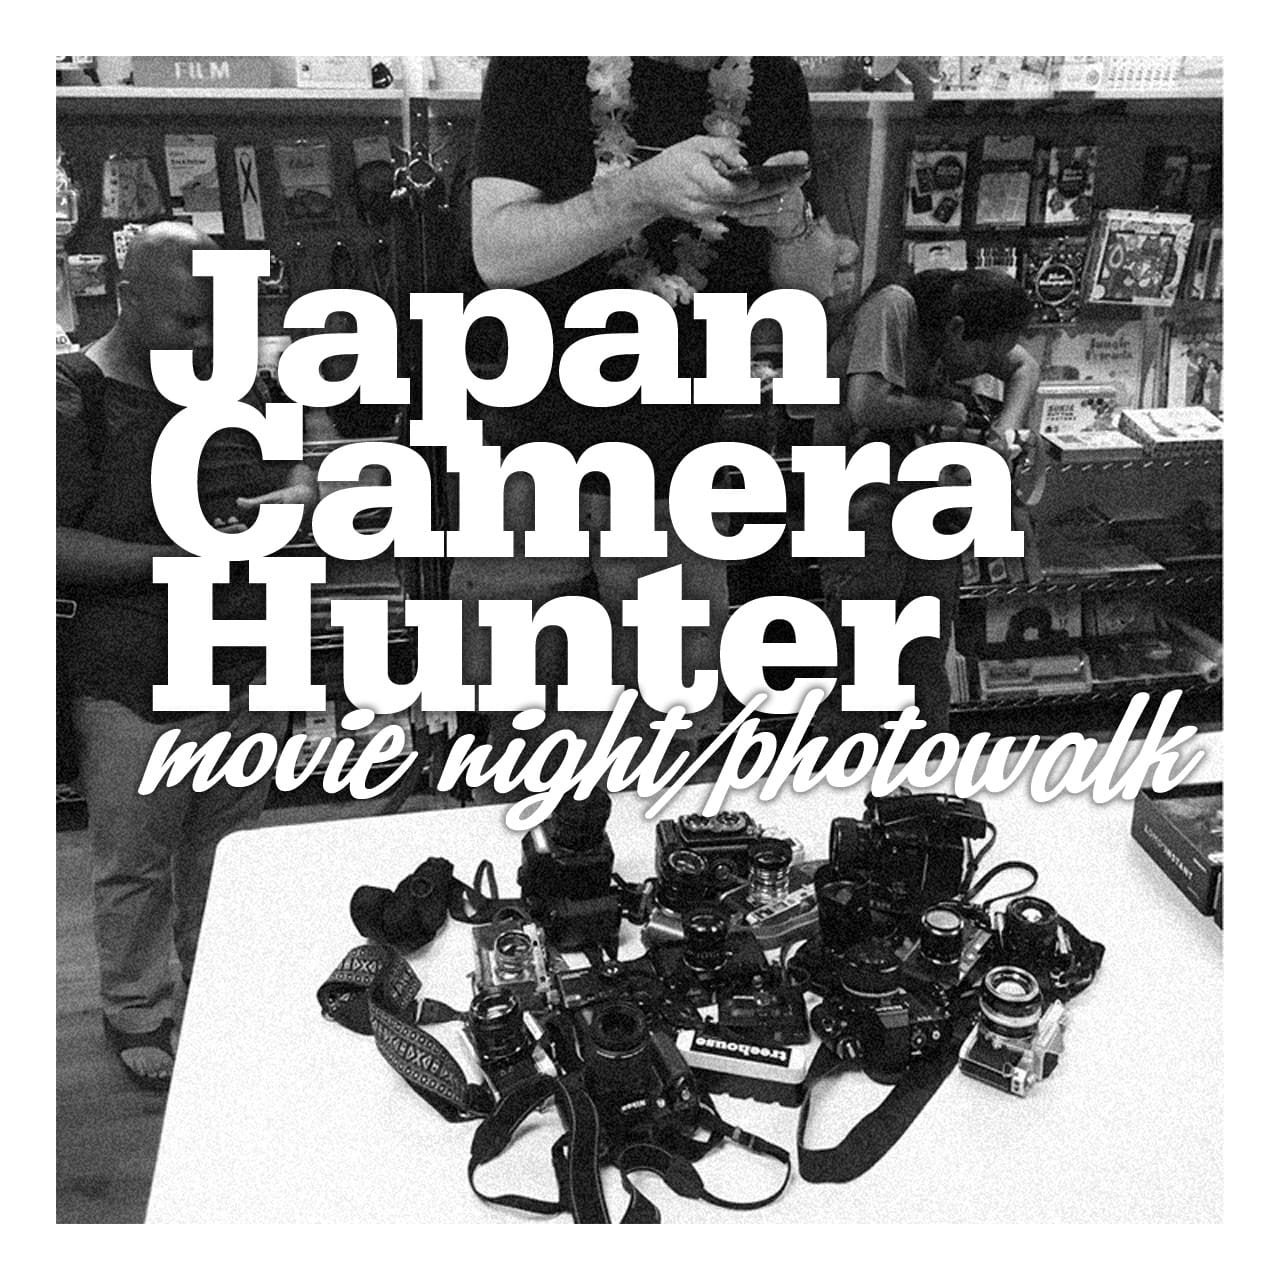 JCH News: Hawaii Movienight/Photowalk